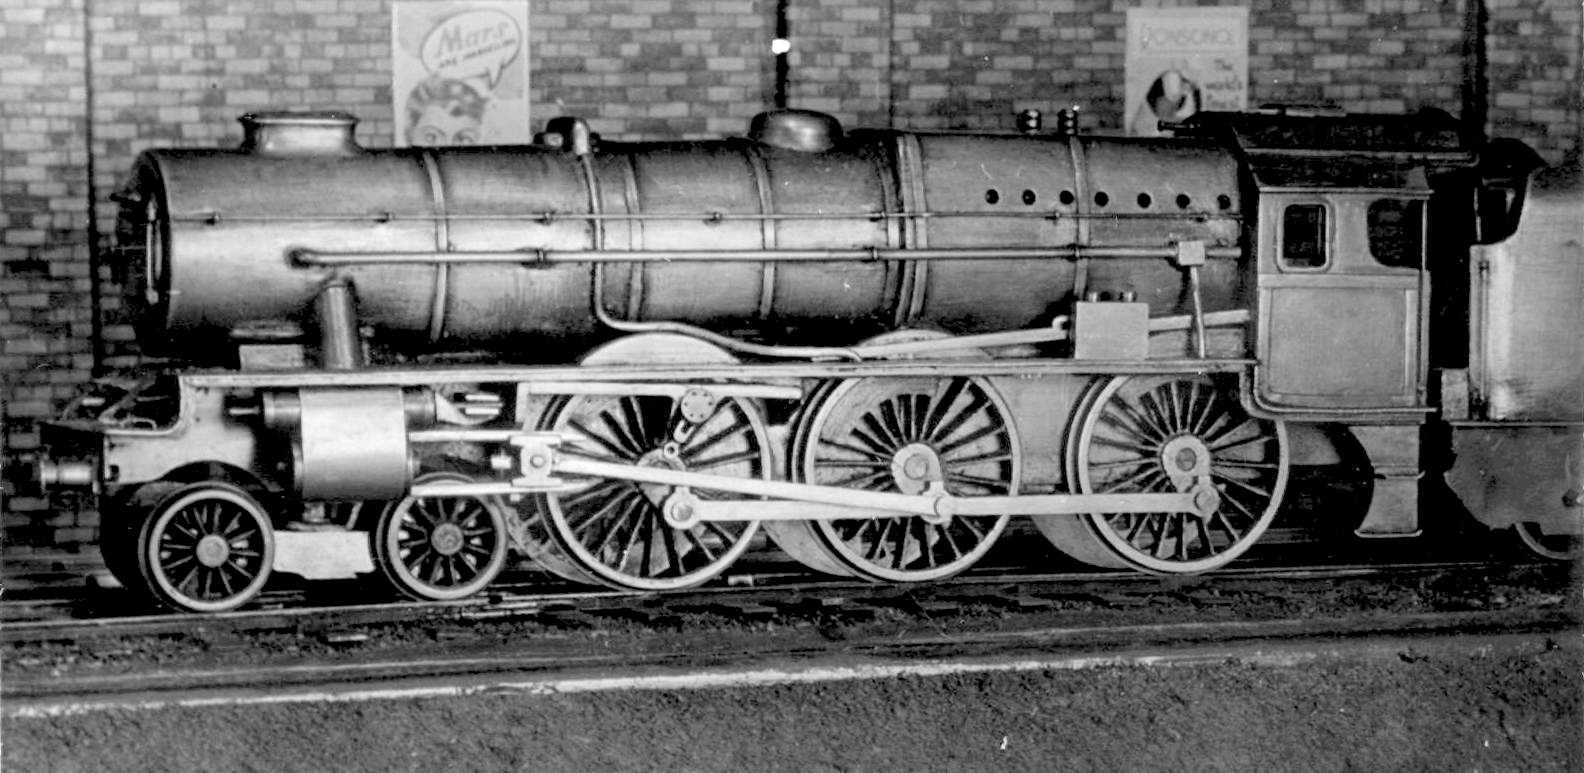 Rebuilt Royal Scot